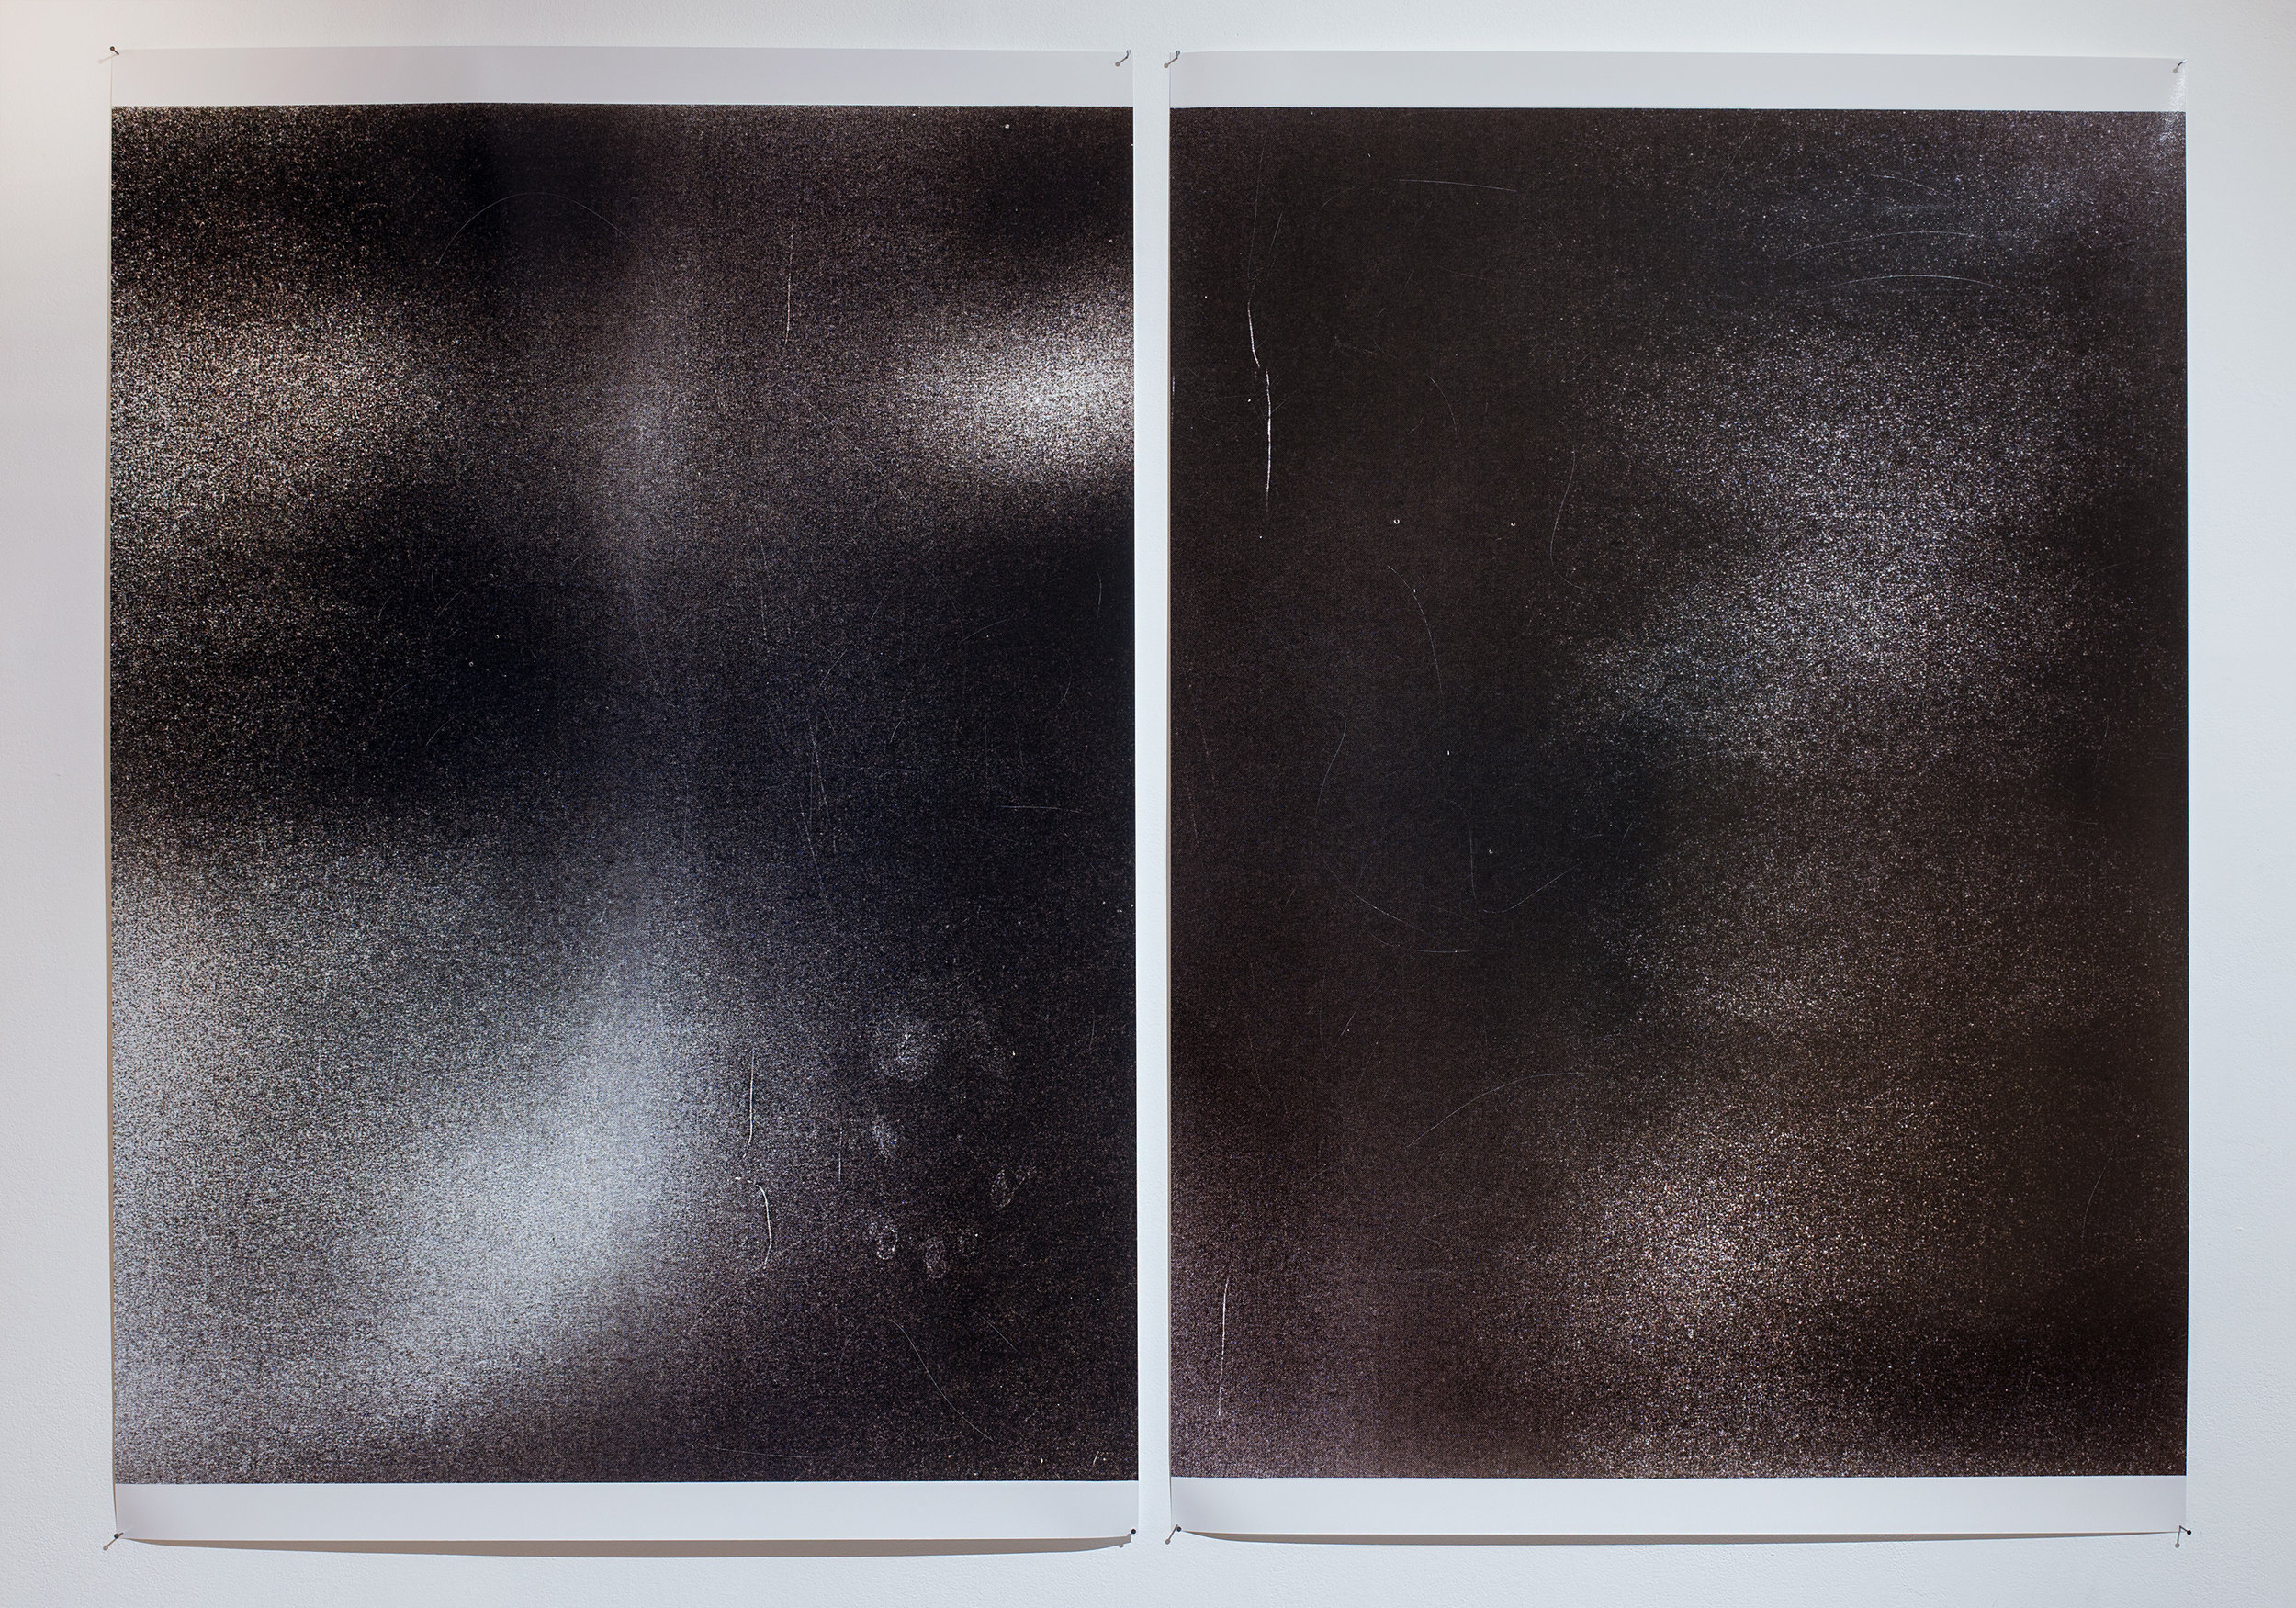 Disintegrated Surface 1  Hand printed c type colour analogue photographic print 137 x 100cm 2018   Disintegrated Surface 2  Hand printed c type colour analogue photographic print 137 x 100cm 2018